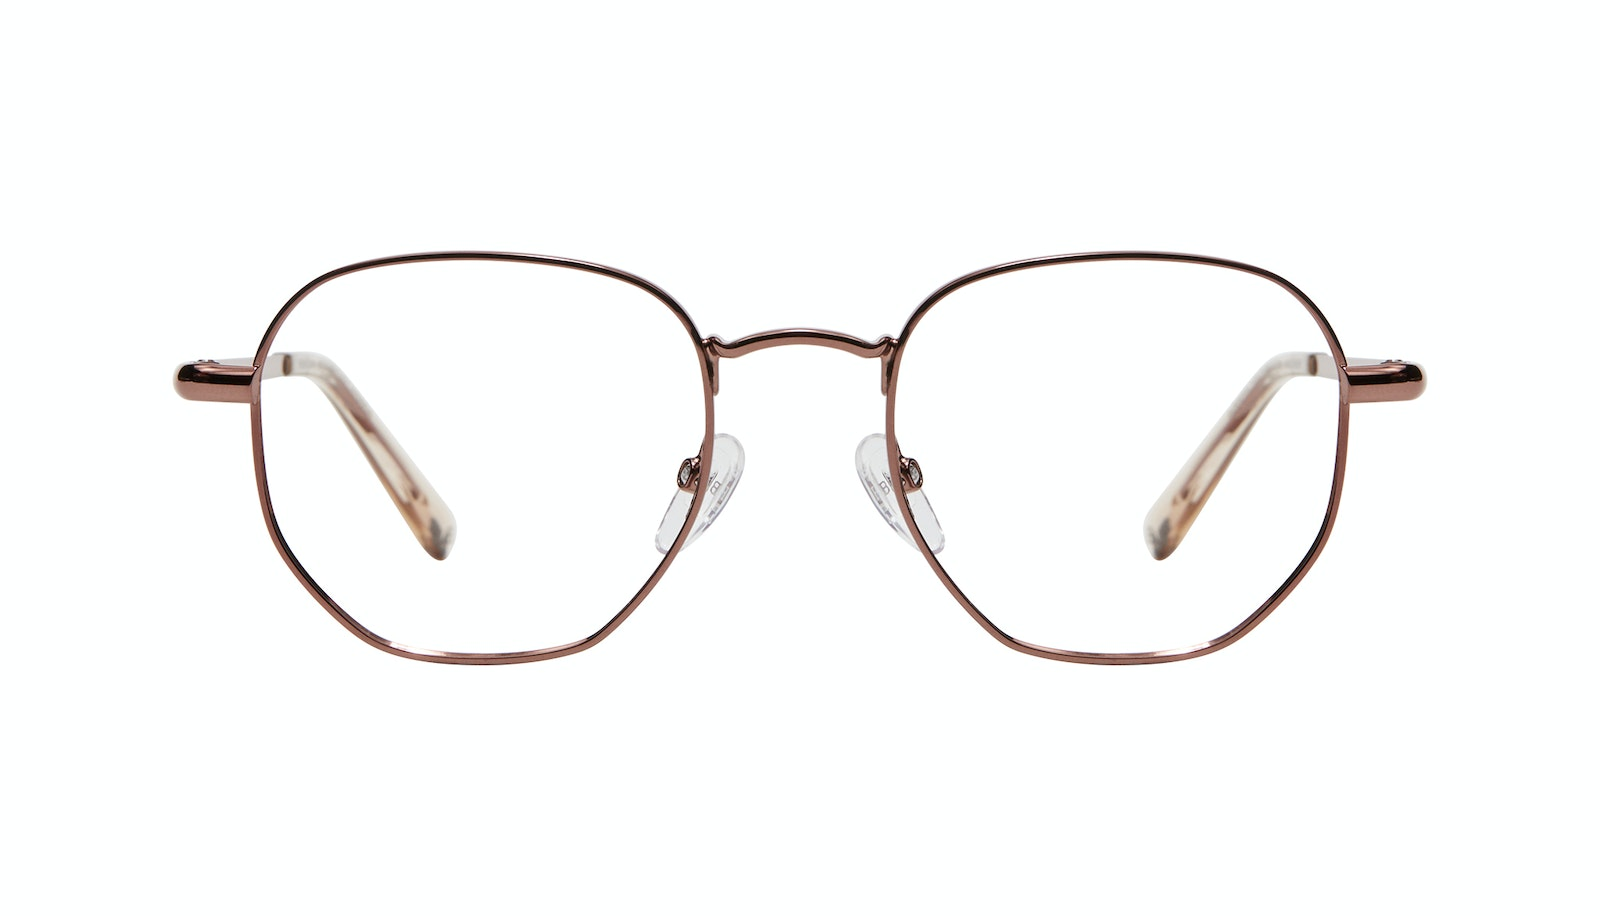 Affordable Fashion Glasses Round Eyeglasses Men Women Aura Copper